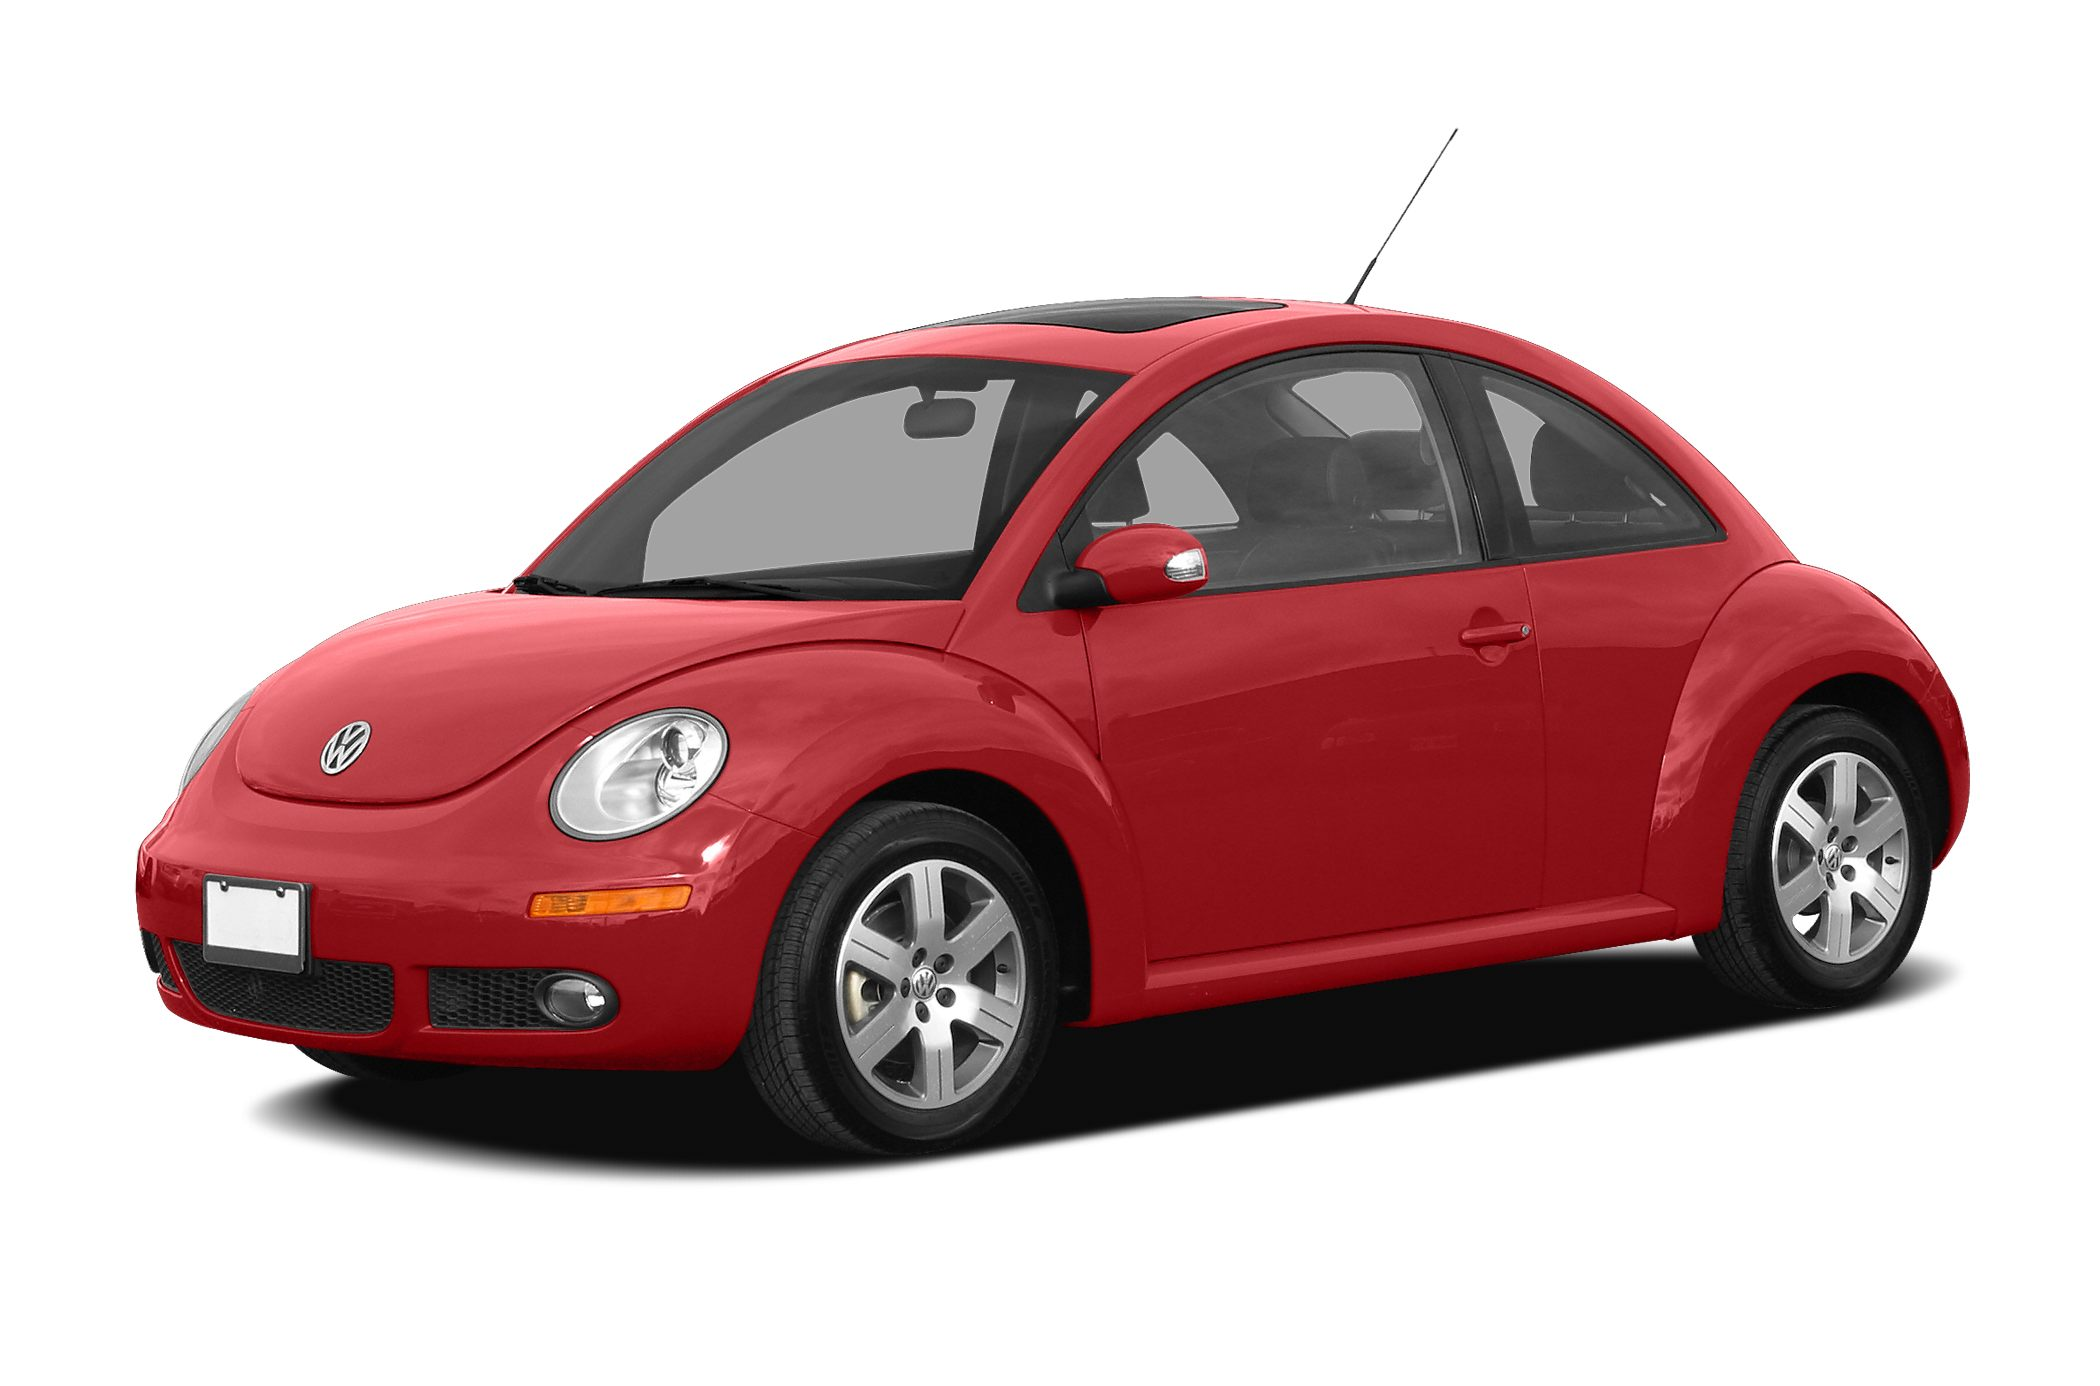 2010 Volkswagen New Beetle 25 Final Edition Miles 83416Stock AM020610 VIN 3VWPW3AG7AM020610